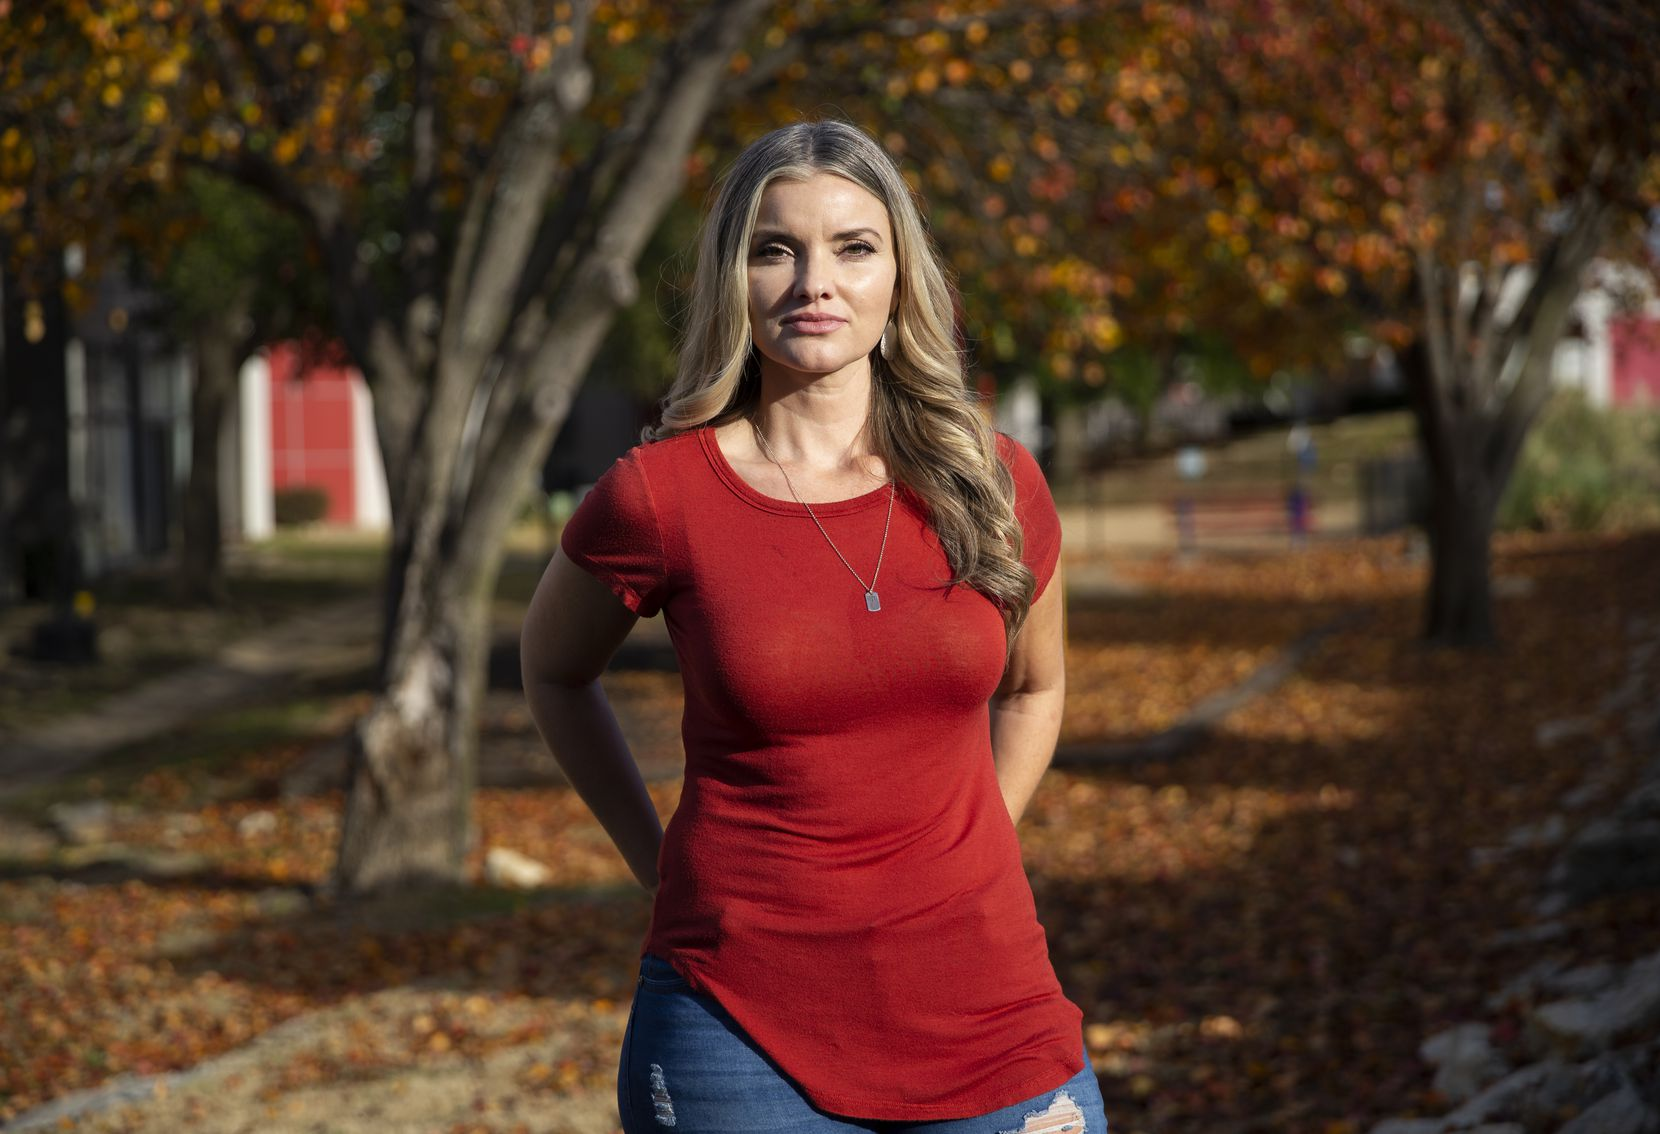 Jamie Nickerson poses outside of her home on Nov. 25, 2019 in Fort Worth. A July 2018 botched robbery at Veritex Community Bank on Merrick Street left her and two other employees injured. Nickerson still suffers from mental and physical trauma from the shooting. (Juan Figueroa/ The Dallas Morning News)